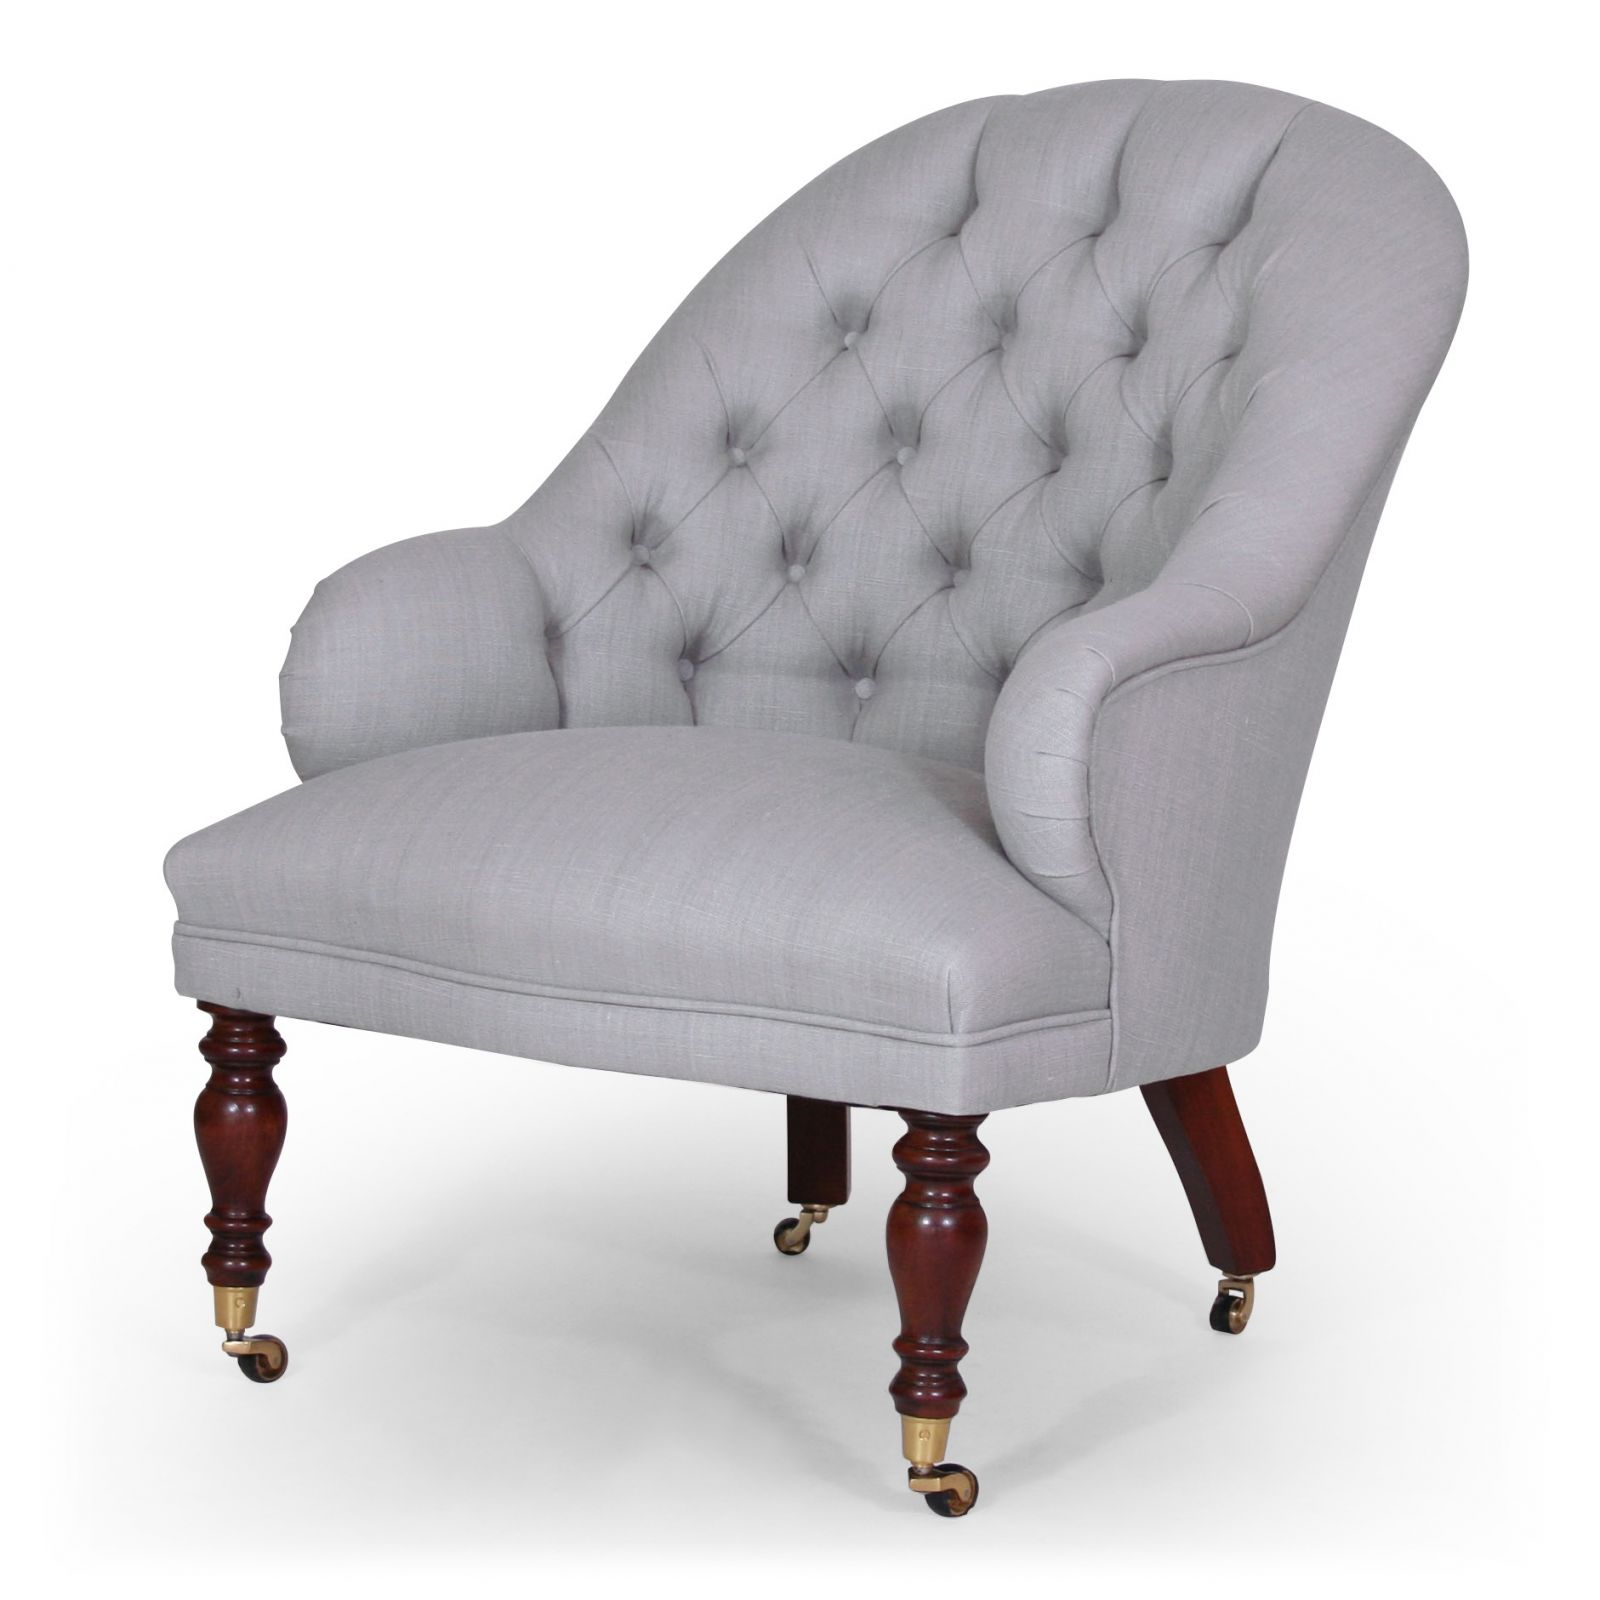 Masefield bedroom chair in Ian Sanderson Kelby Linen